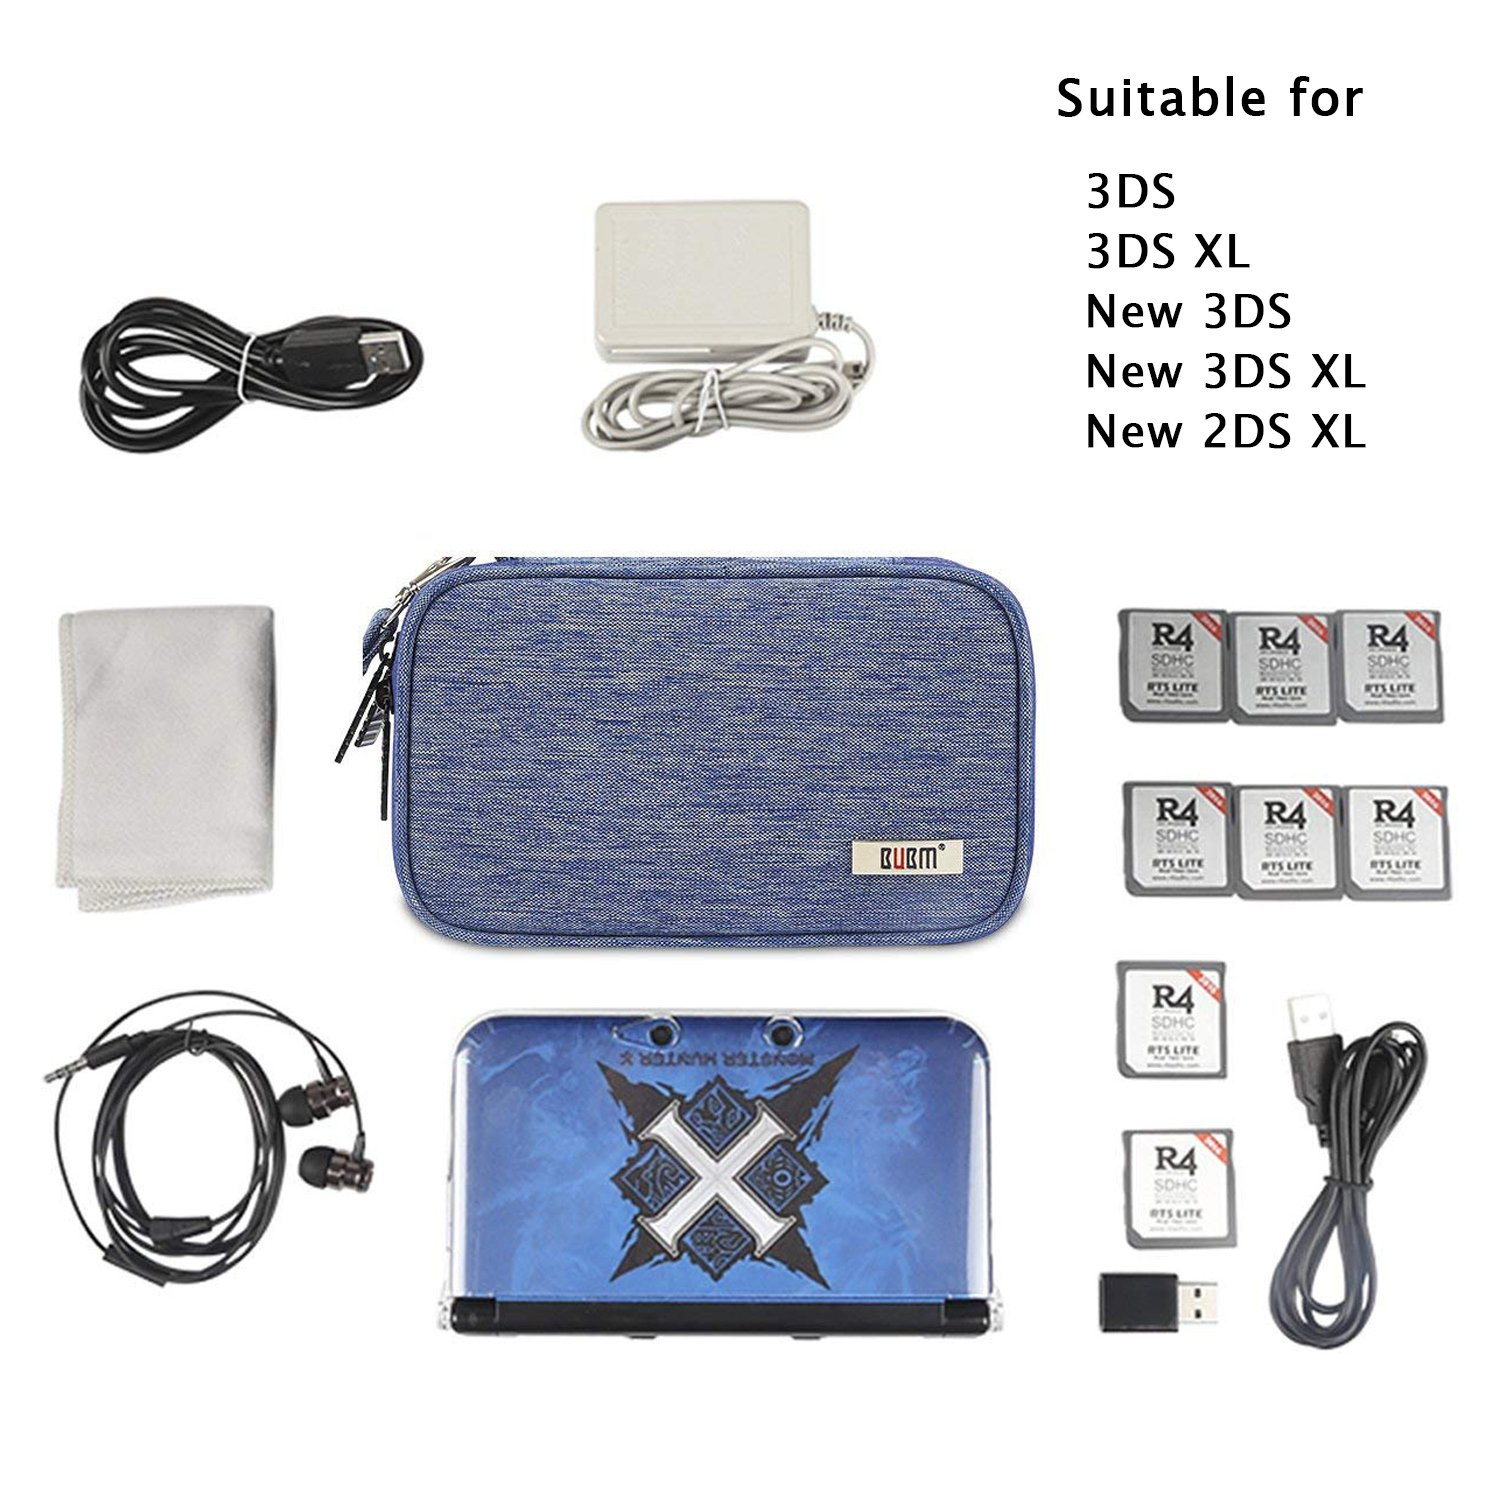 Amazon.com: BUBM 3DS/3DS XL/New 2DS XL - Maletín de ...